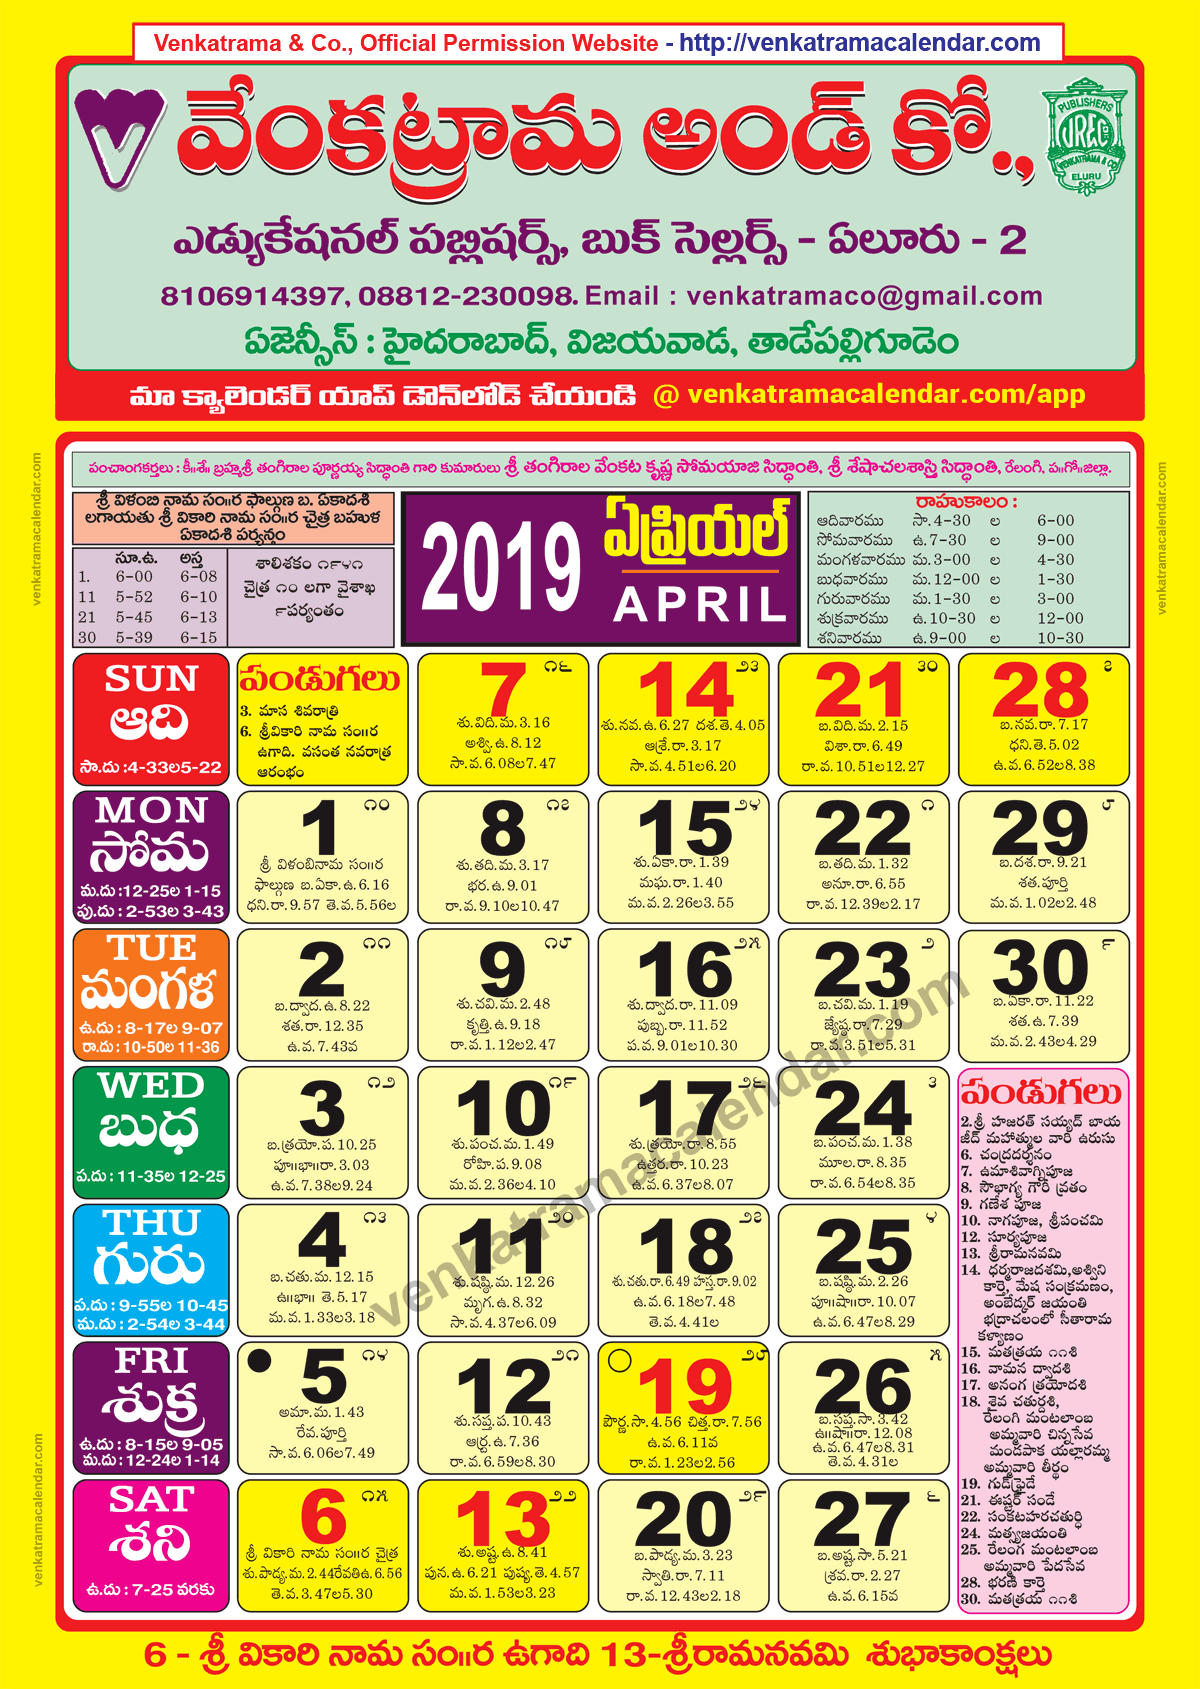 April Venkatrama Co Calendar : Venkatrama co april telugu calendar colour